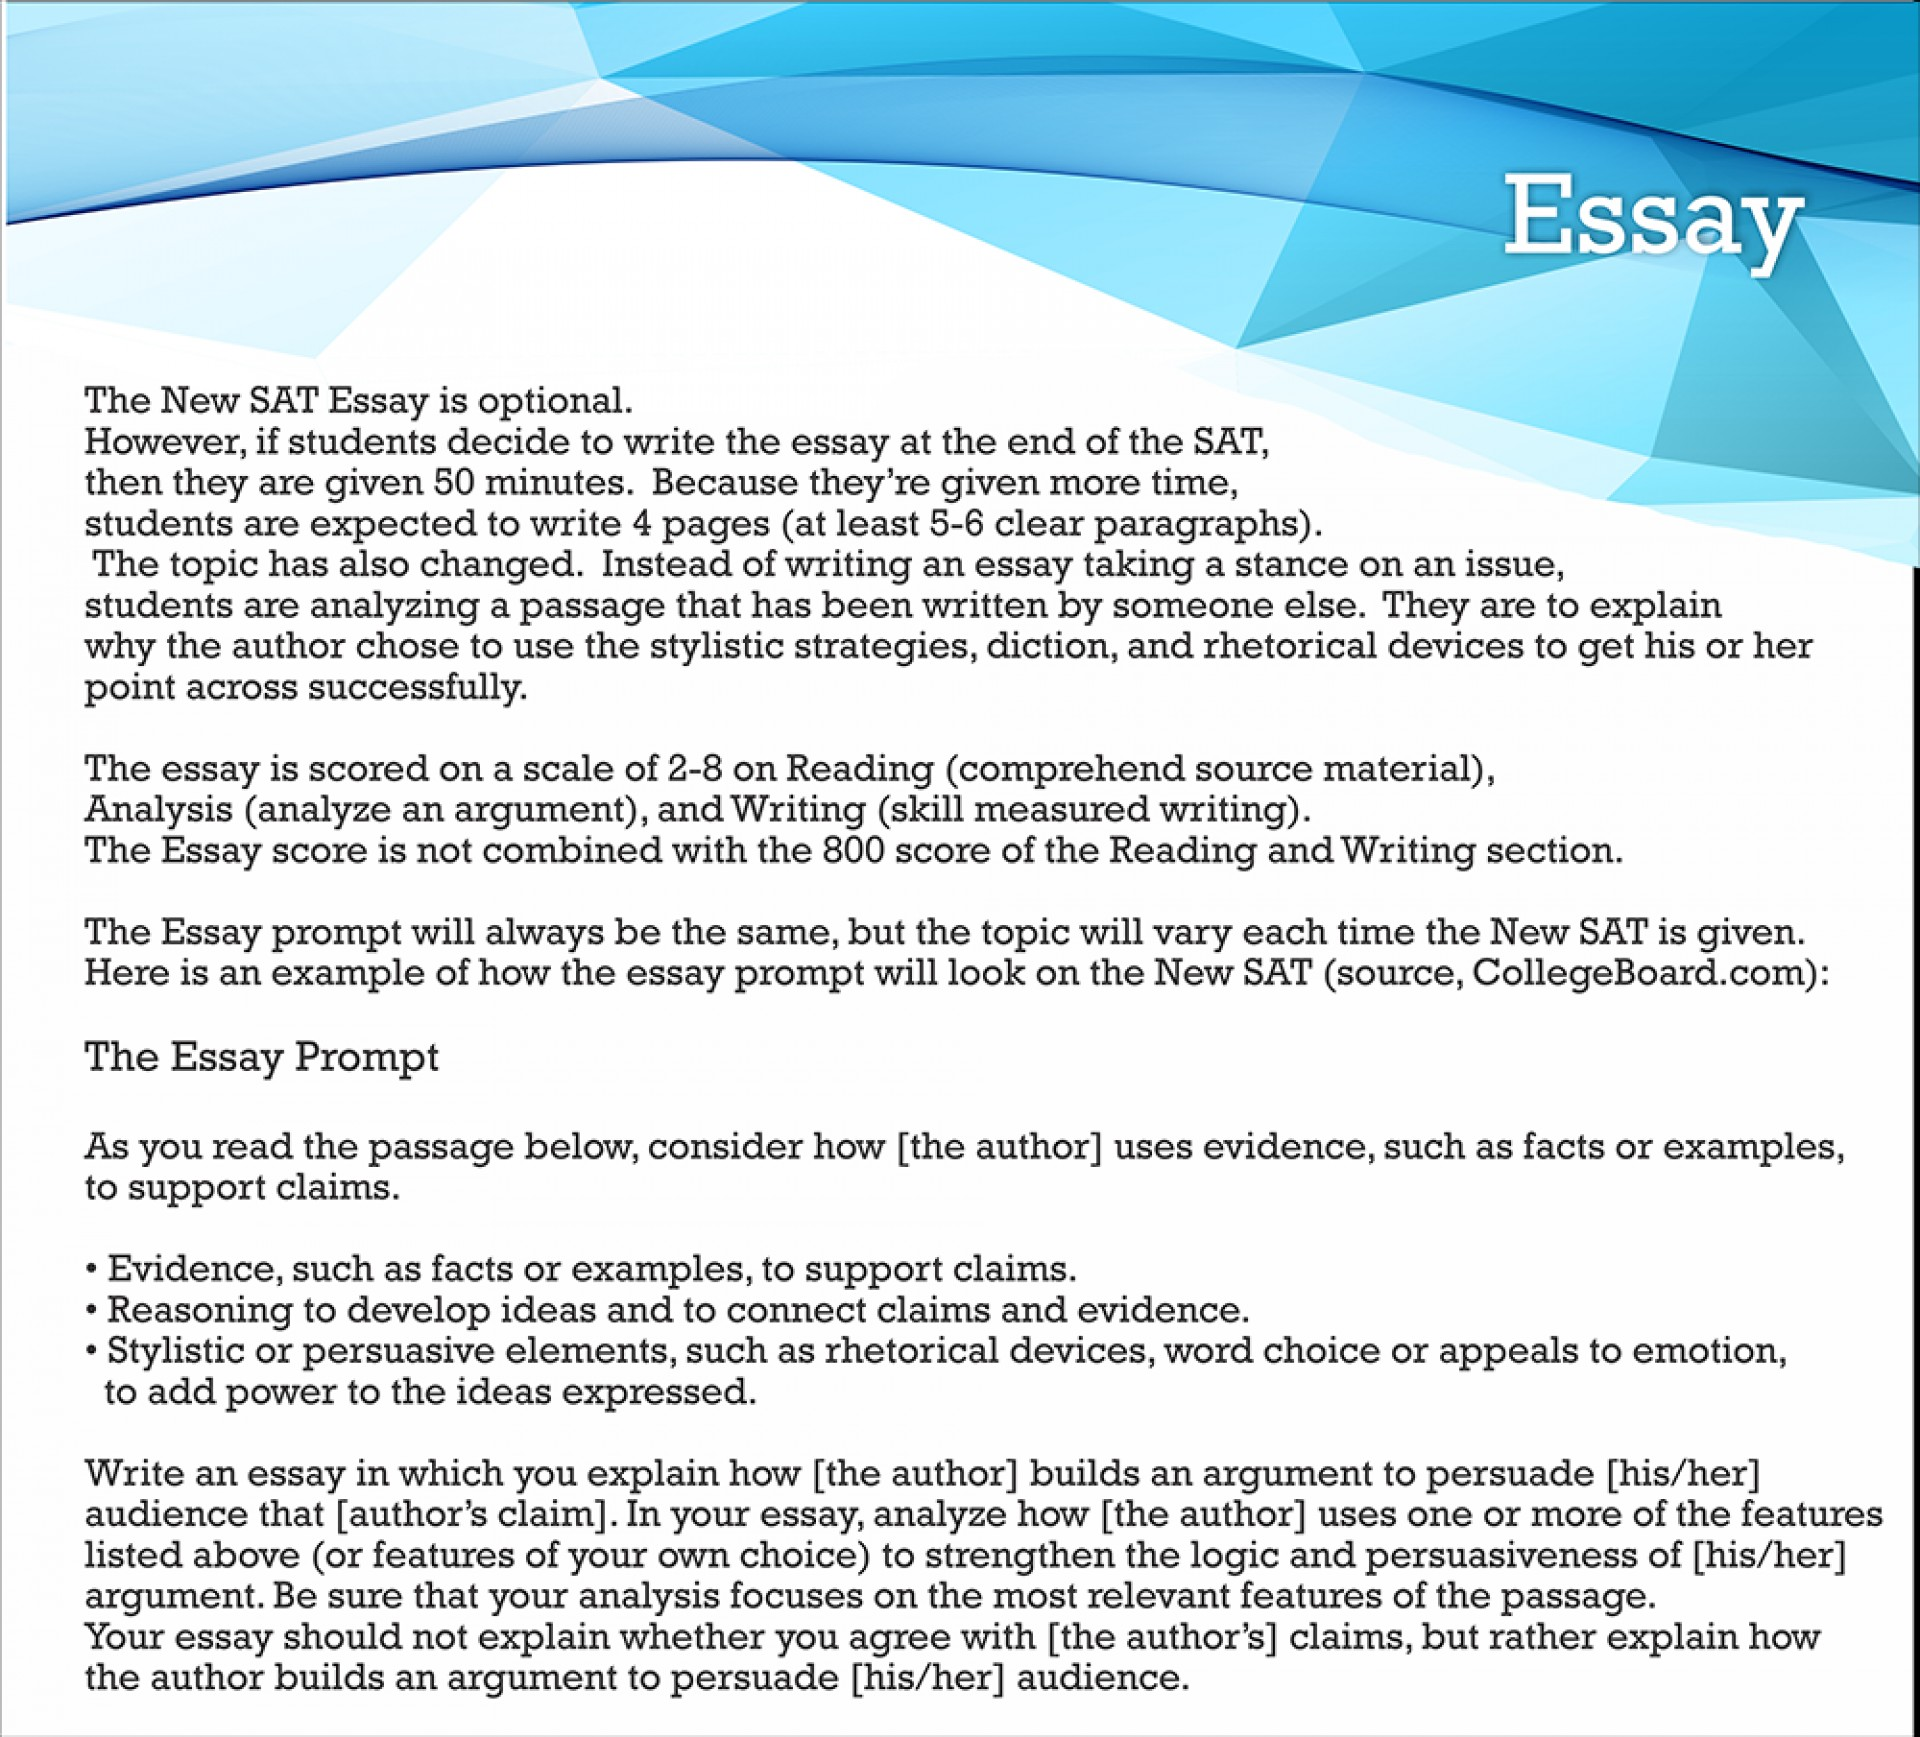 009 Essay Example Sat Top Writing Prompts Examples Paper 1920